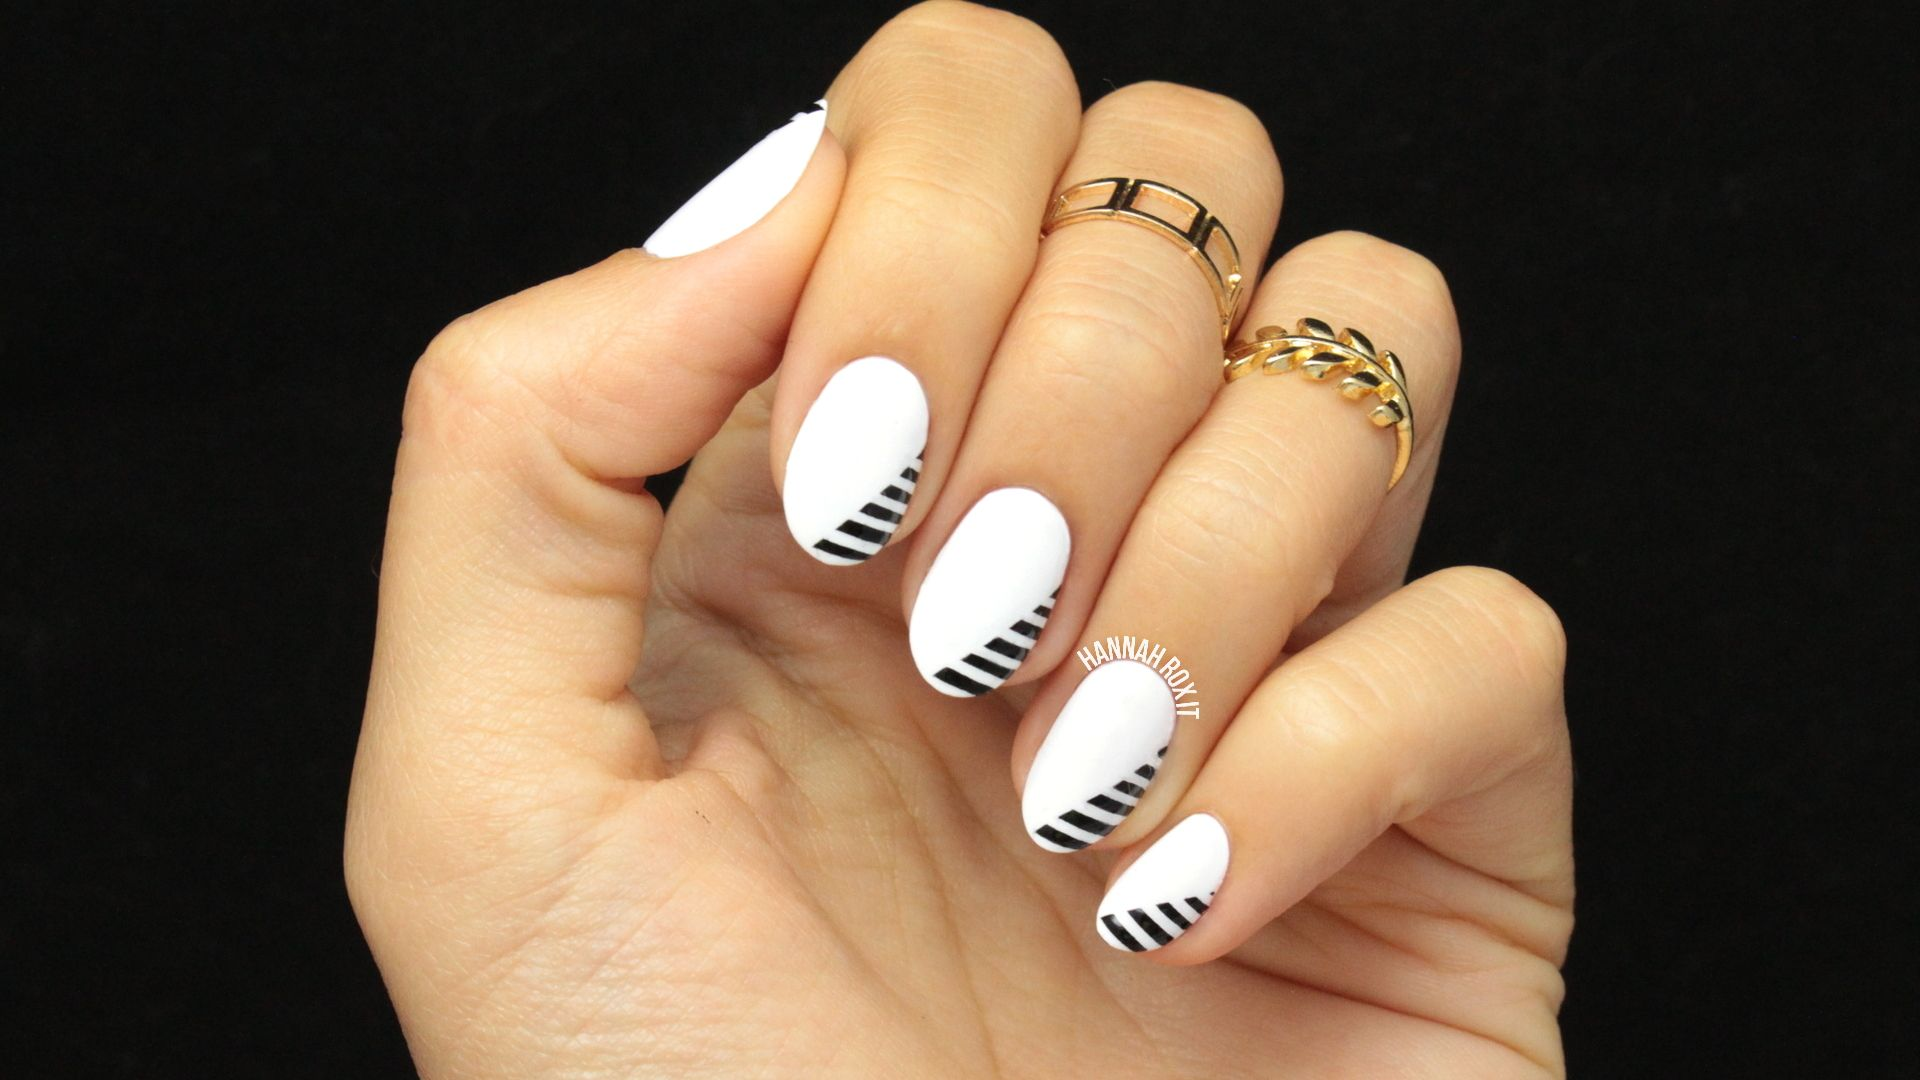 Awesome How To Nail Polish Designs Tiny What Nail Polish Works For Water Marble Clean Opi Gel Nail Polish Review Strawberry Nail Art Old Black Matte Nail Polish Chanel PinkGold Foil Nail Art Minimal, Monochrome And Nails On Pinterest